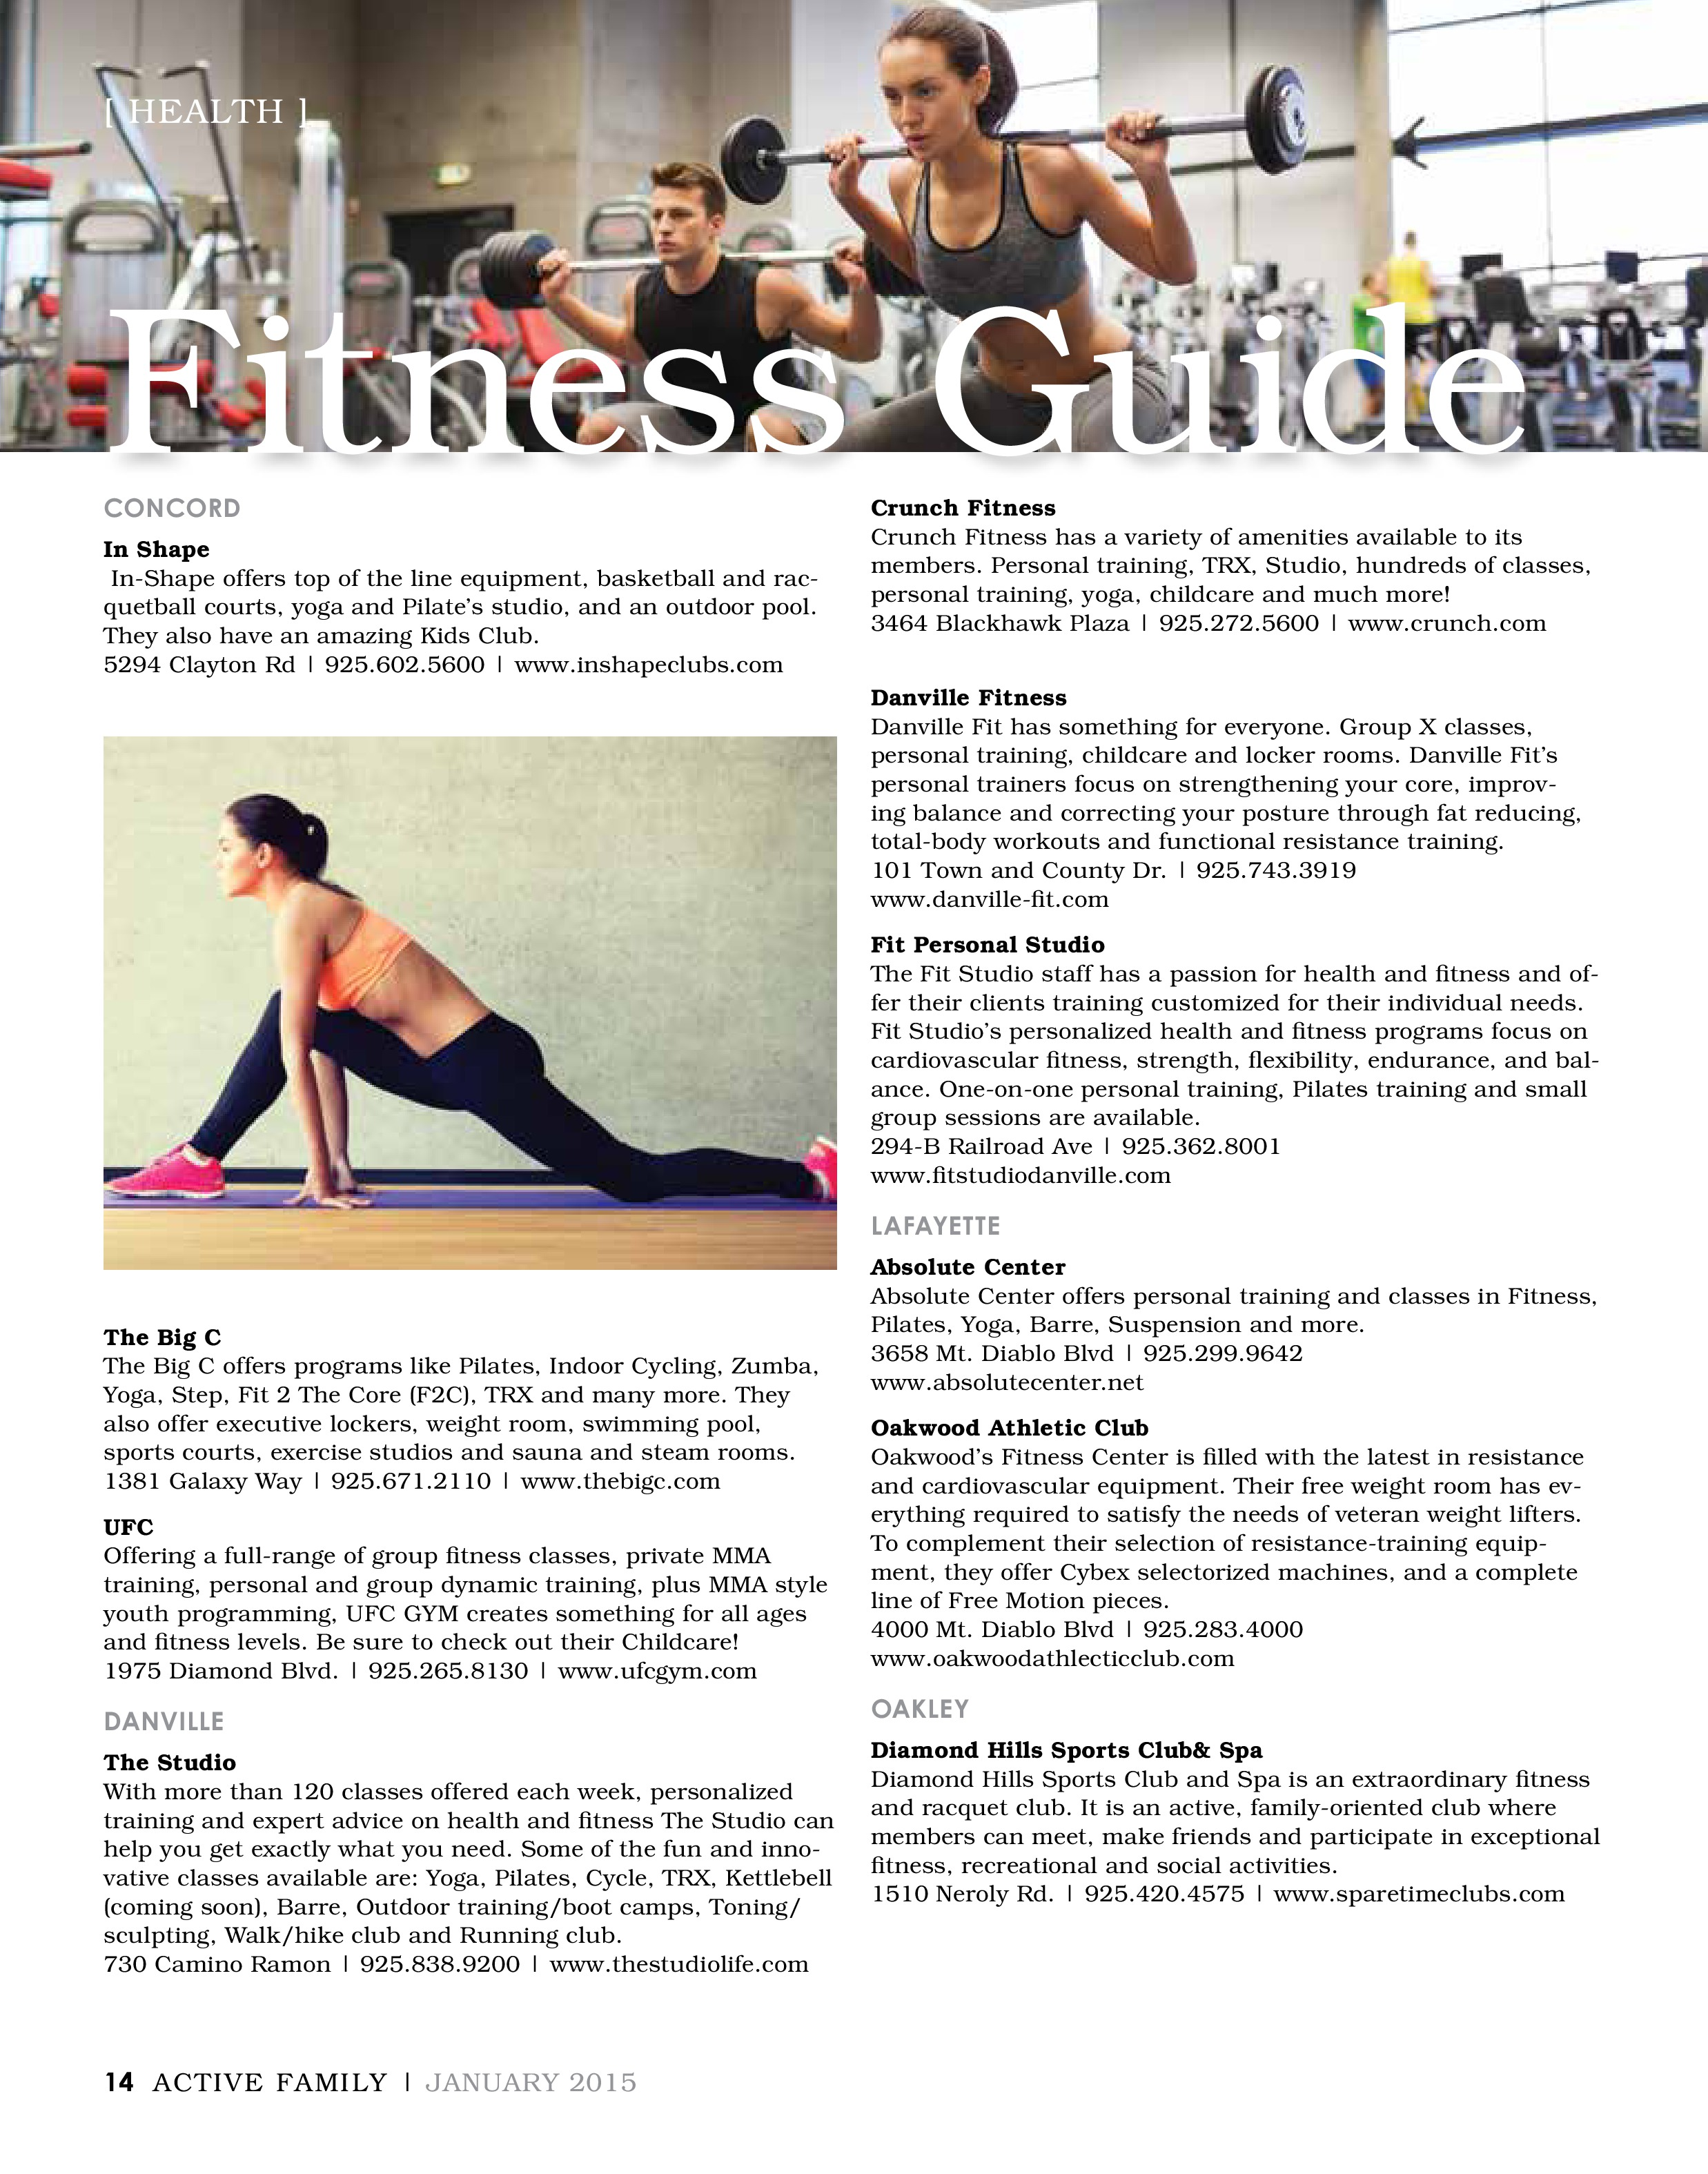 Fitness Guide (3)